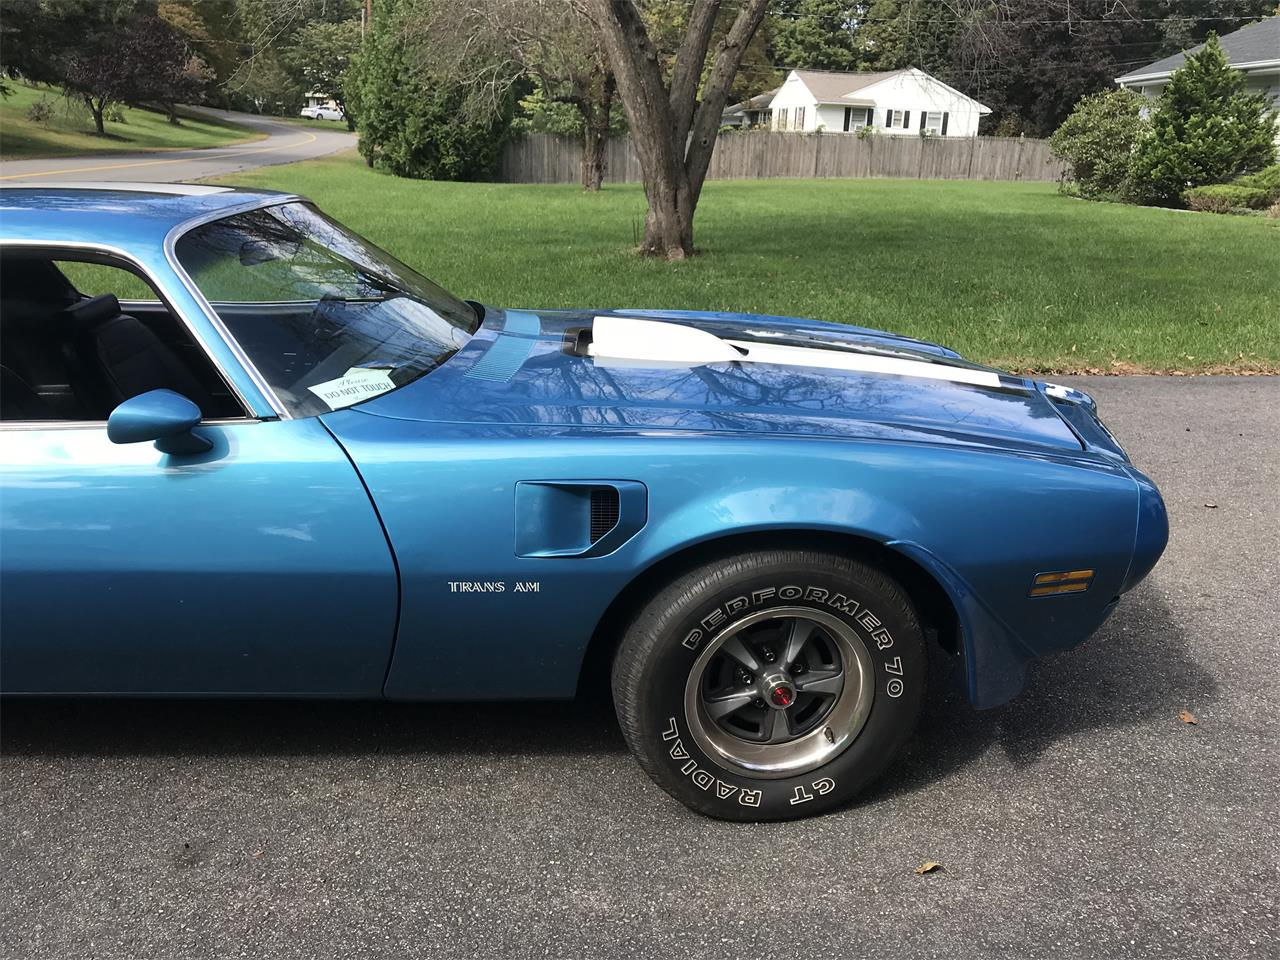 Large Picture of Classic '70 Firebird Trans Am located in Connecticut - $50,000.00 Offered by a Private Seller - ONU7